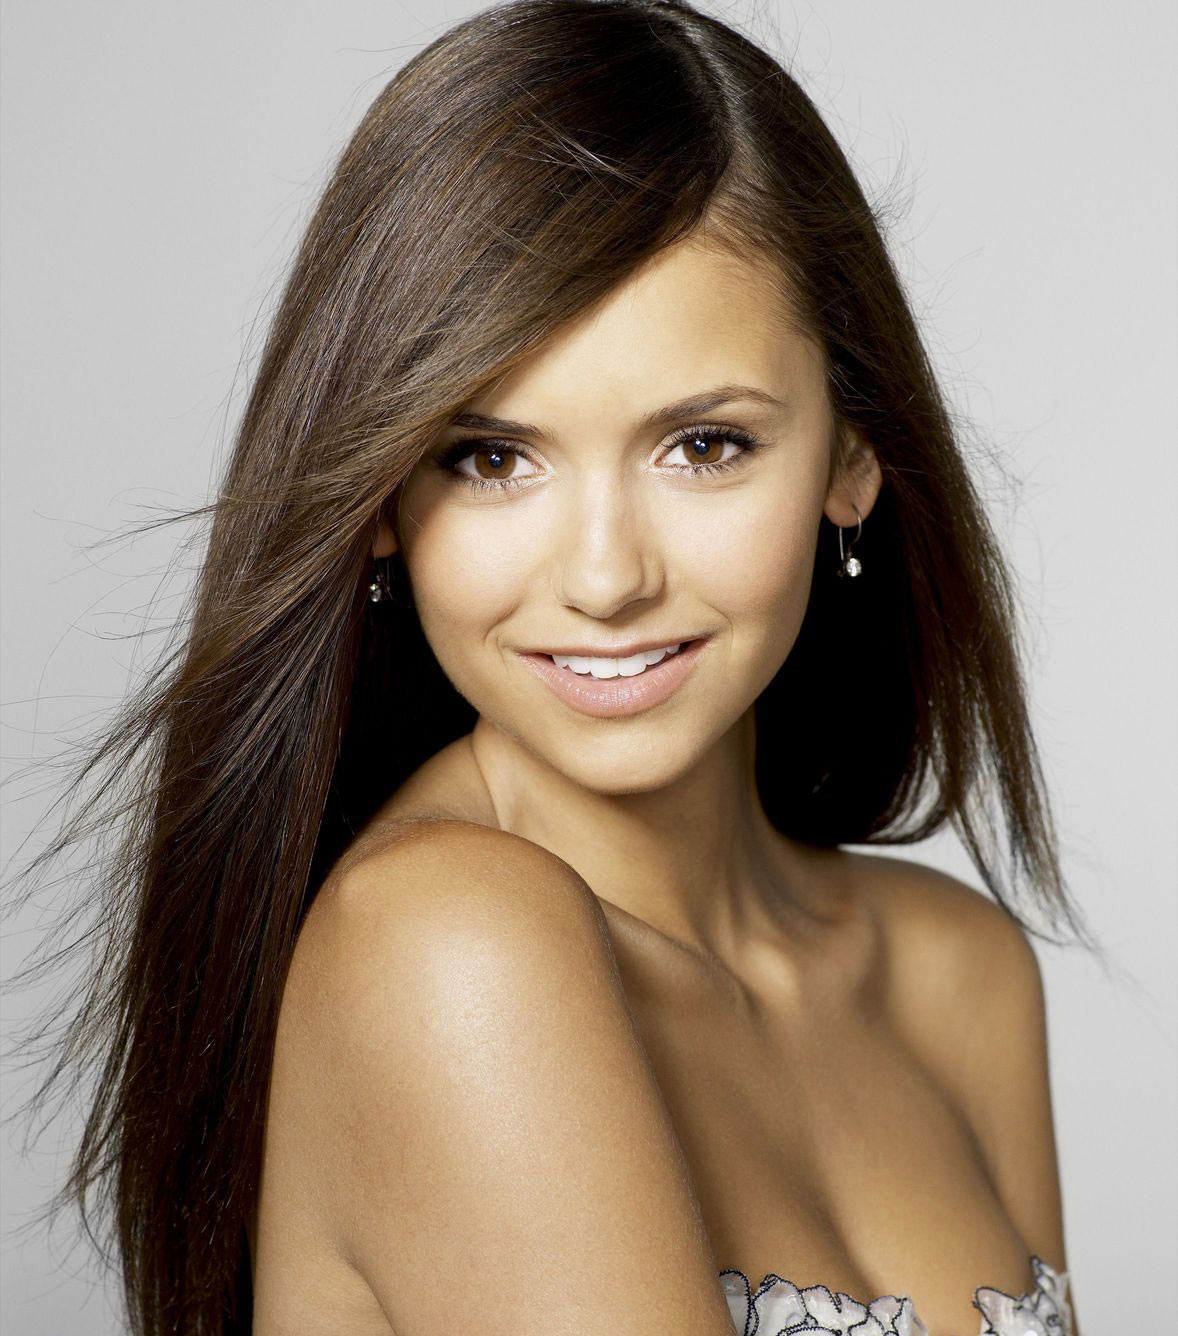 Nina Dobrev Wallpaper: 241543903: Nina Dobrev Hot Pictures/Images 2012